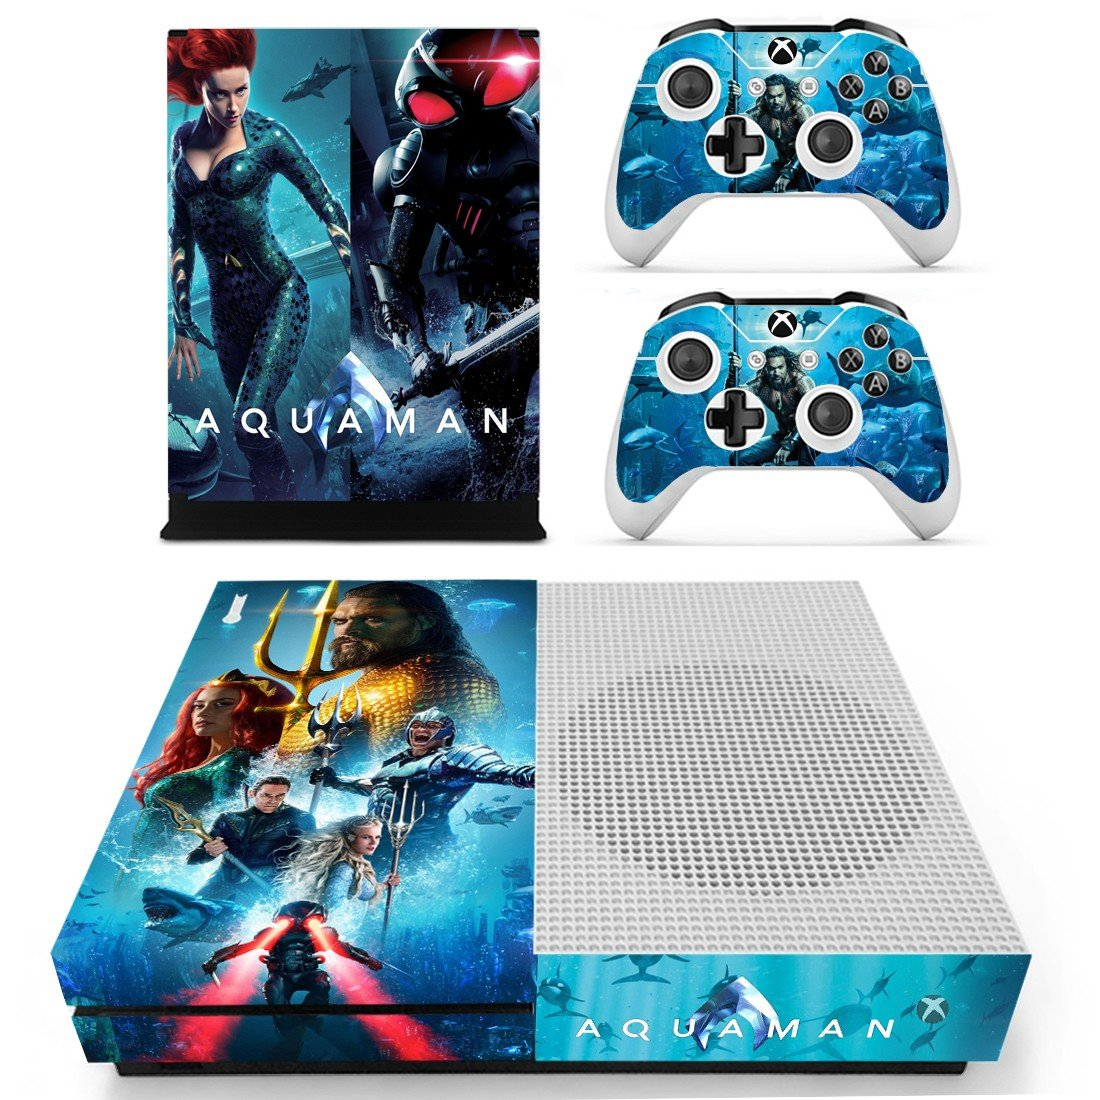 AquaMan decal skin sticker for Xbox One S console and controllers